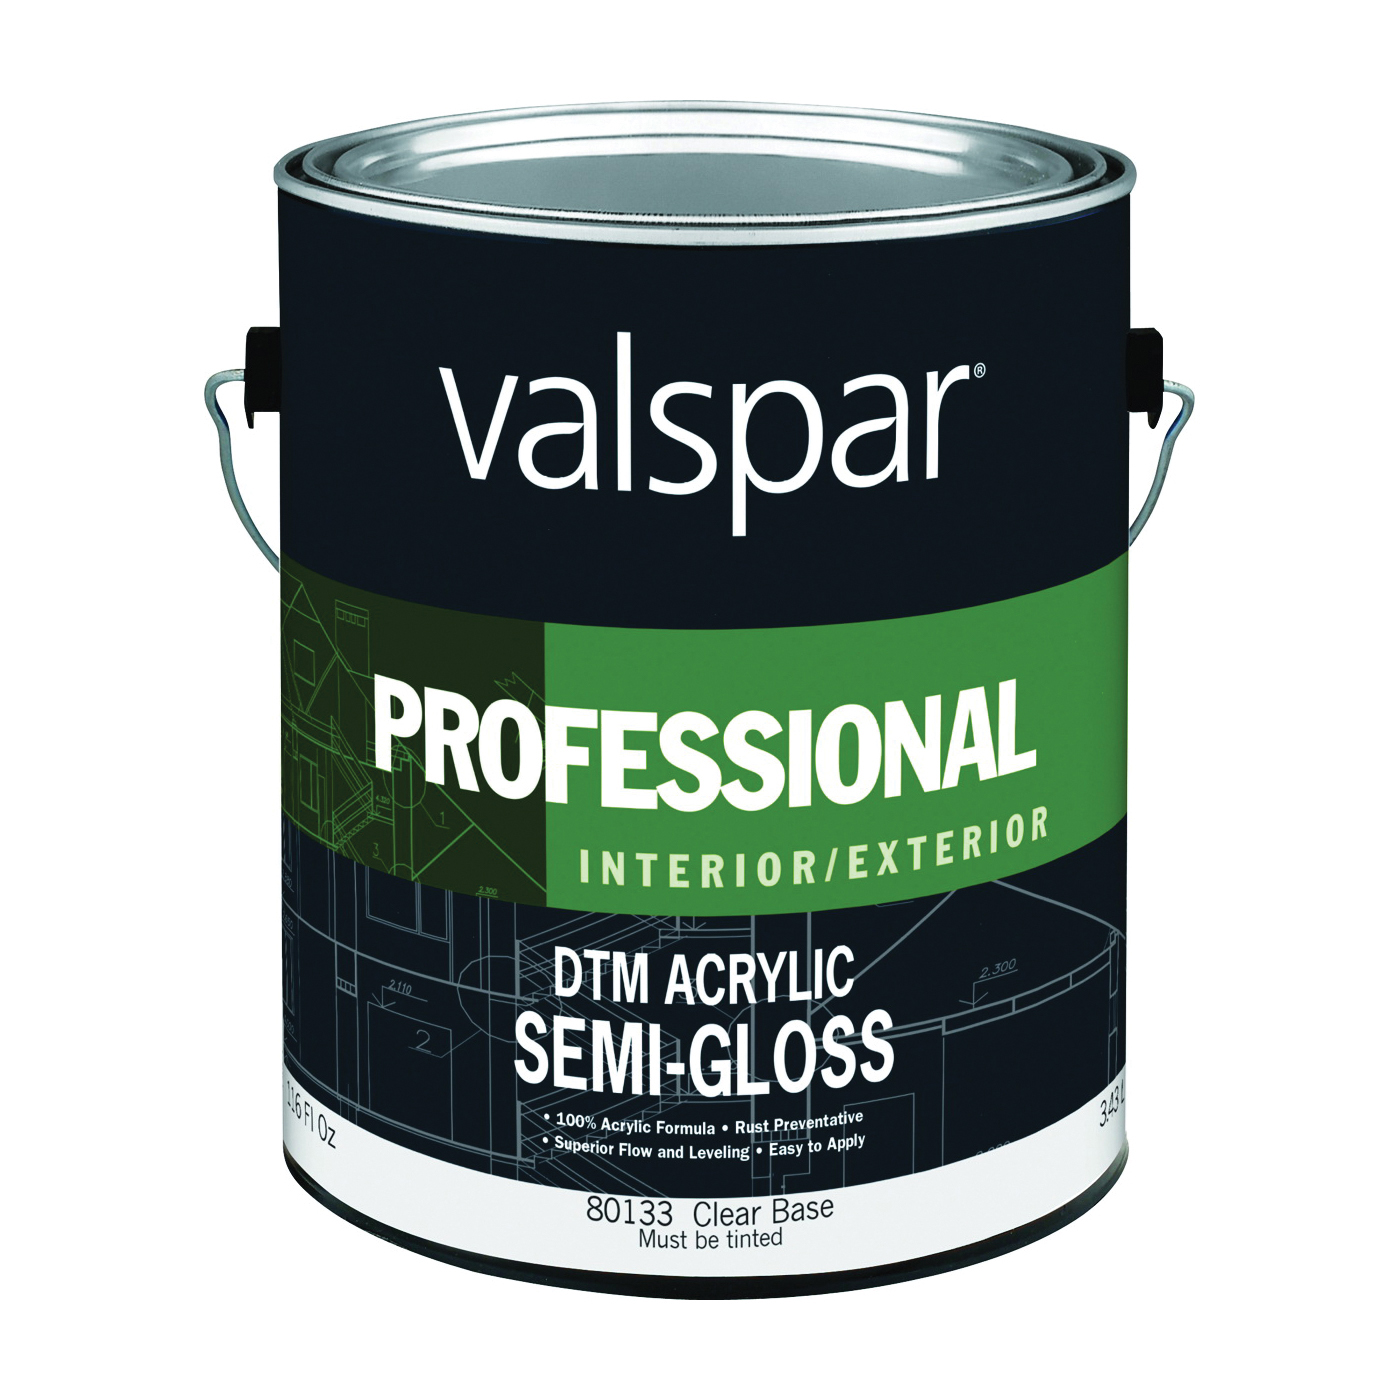 Picture of Valspar 80133 DTM Acrylic Topcoat, Semi-Gloss, Clear, 1 gal, Pail